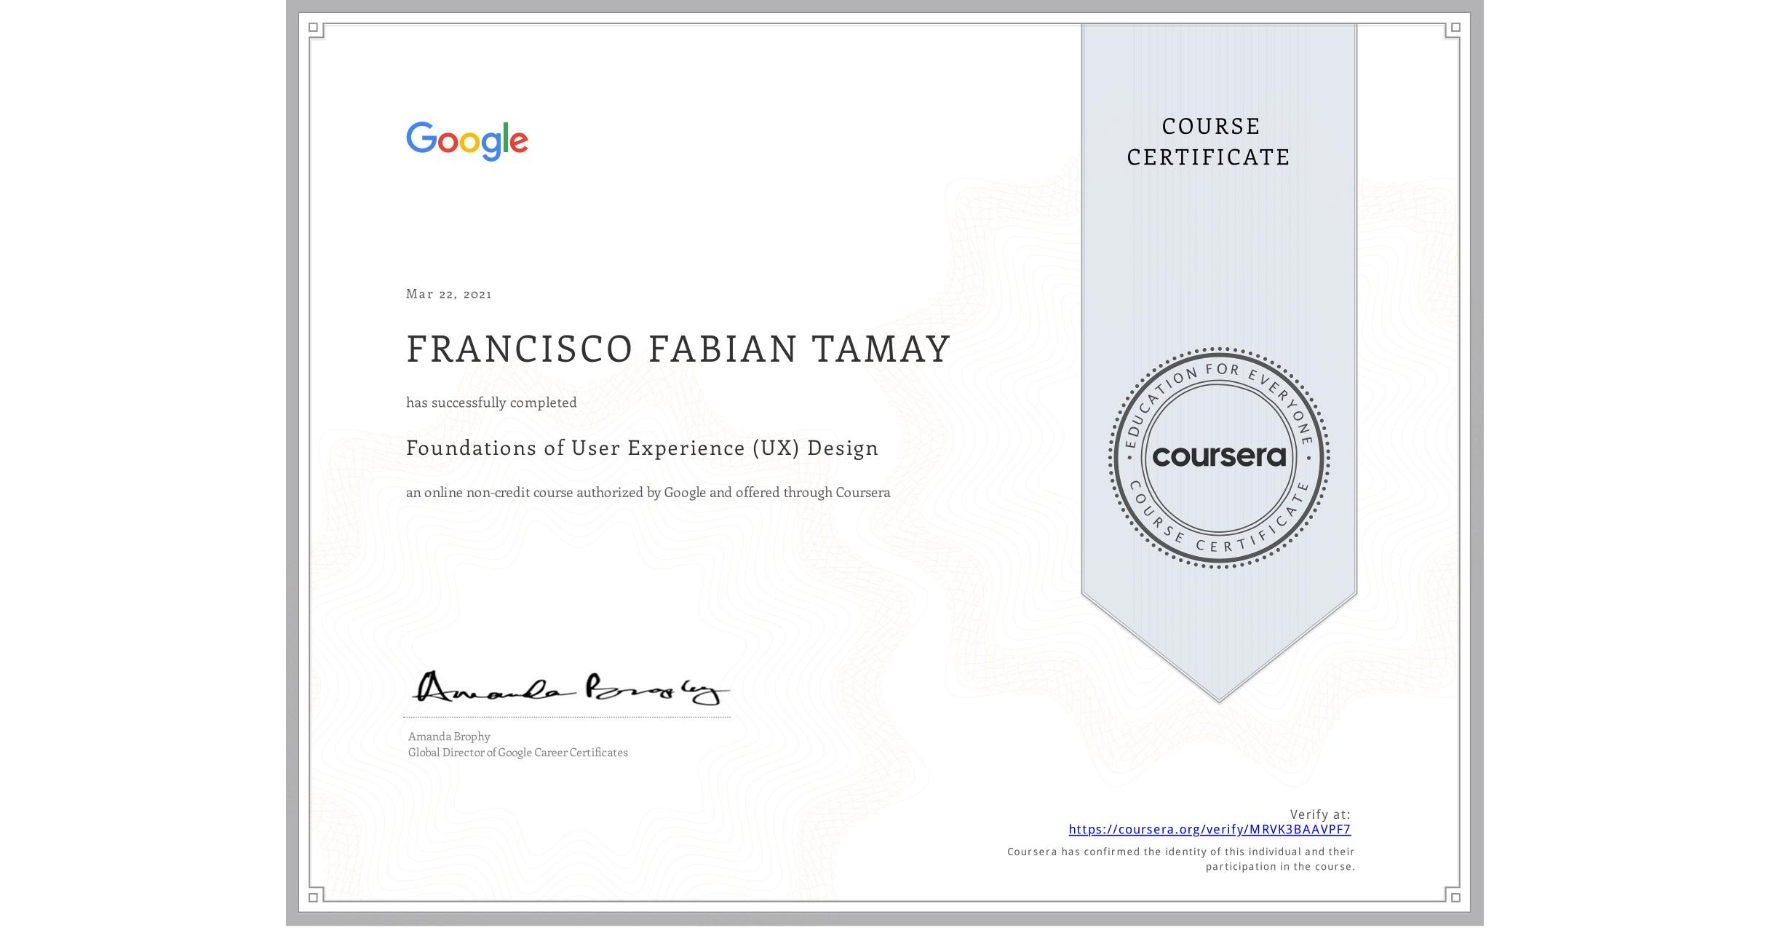 View certificate for FRANCISCO FABIAN  TAMAY, Foundations of User Experience (UX) Design, an online non-credit course authorized by Google and offered through Coursera